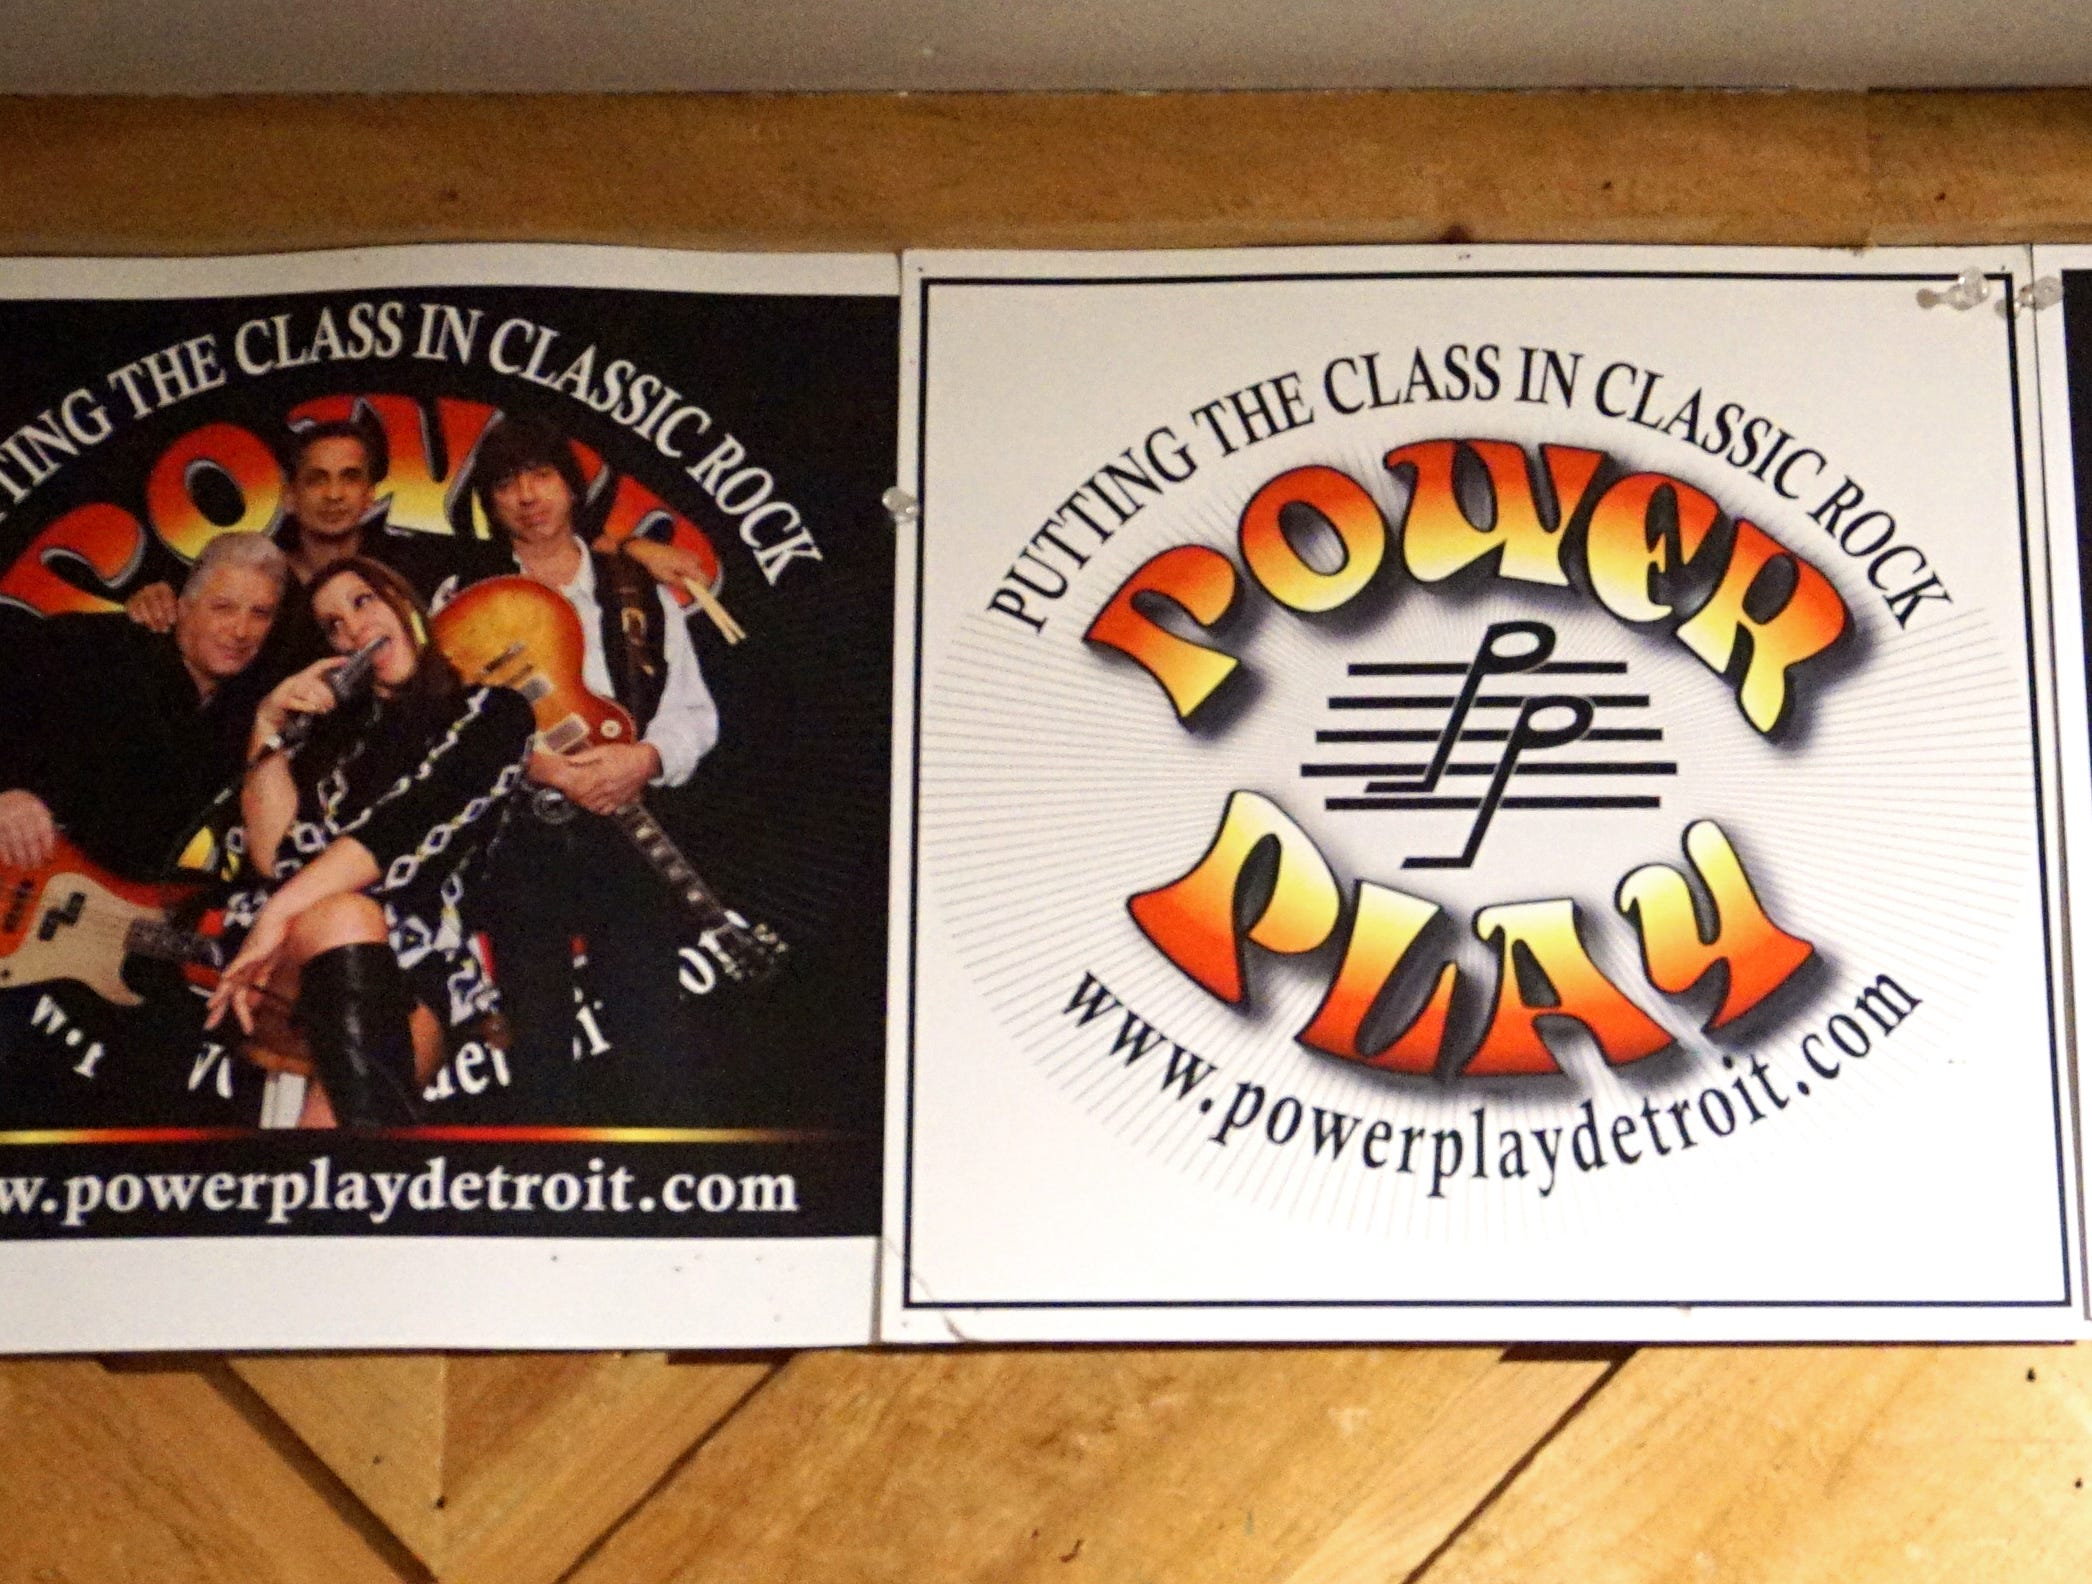 In their studio-garage-practice space Power Play has some of their promotional posters up on the wall.